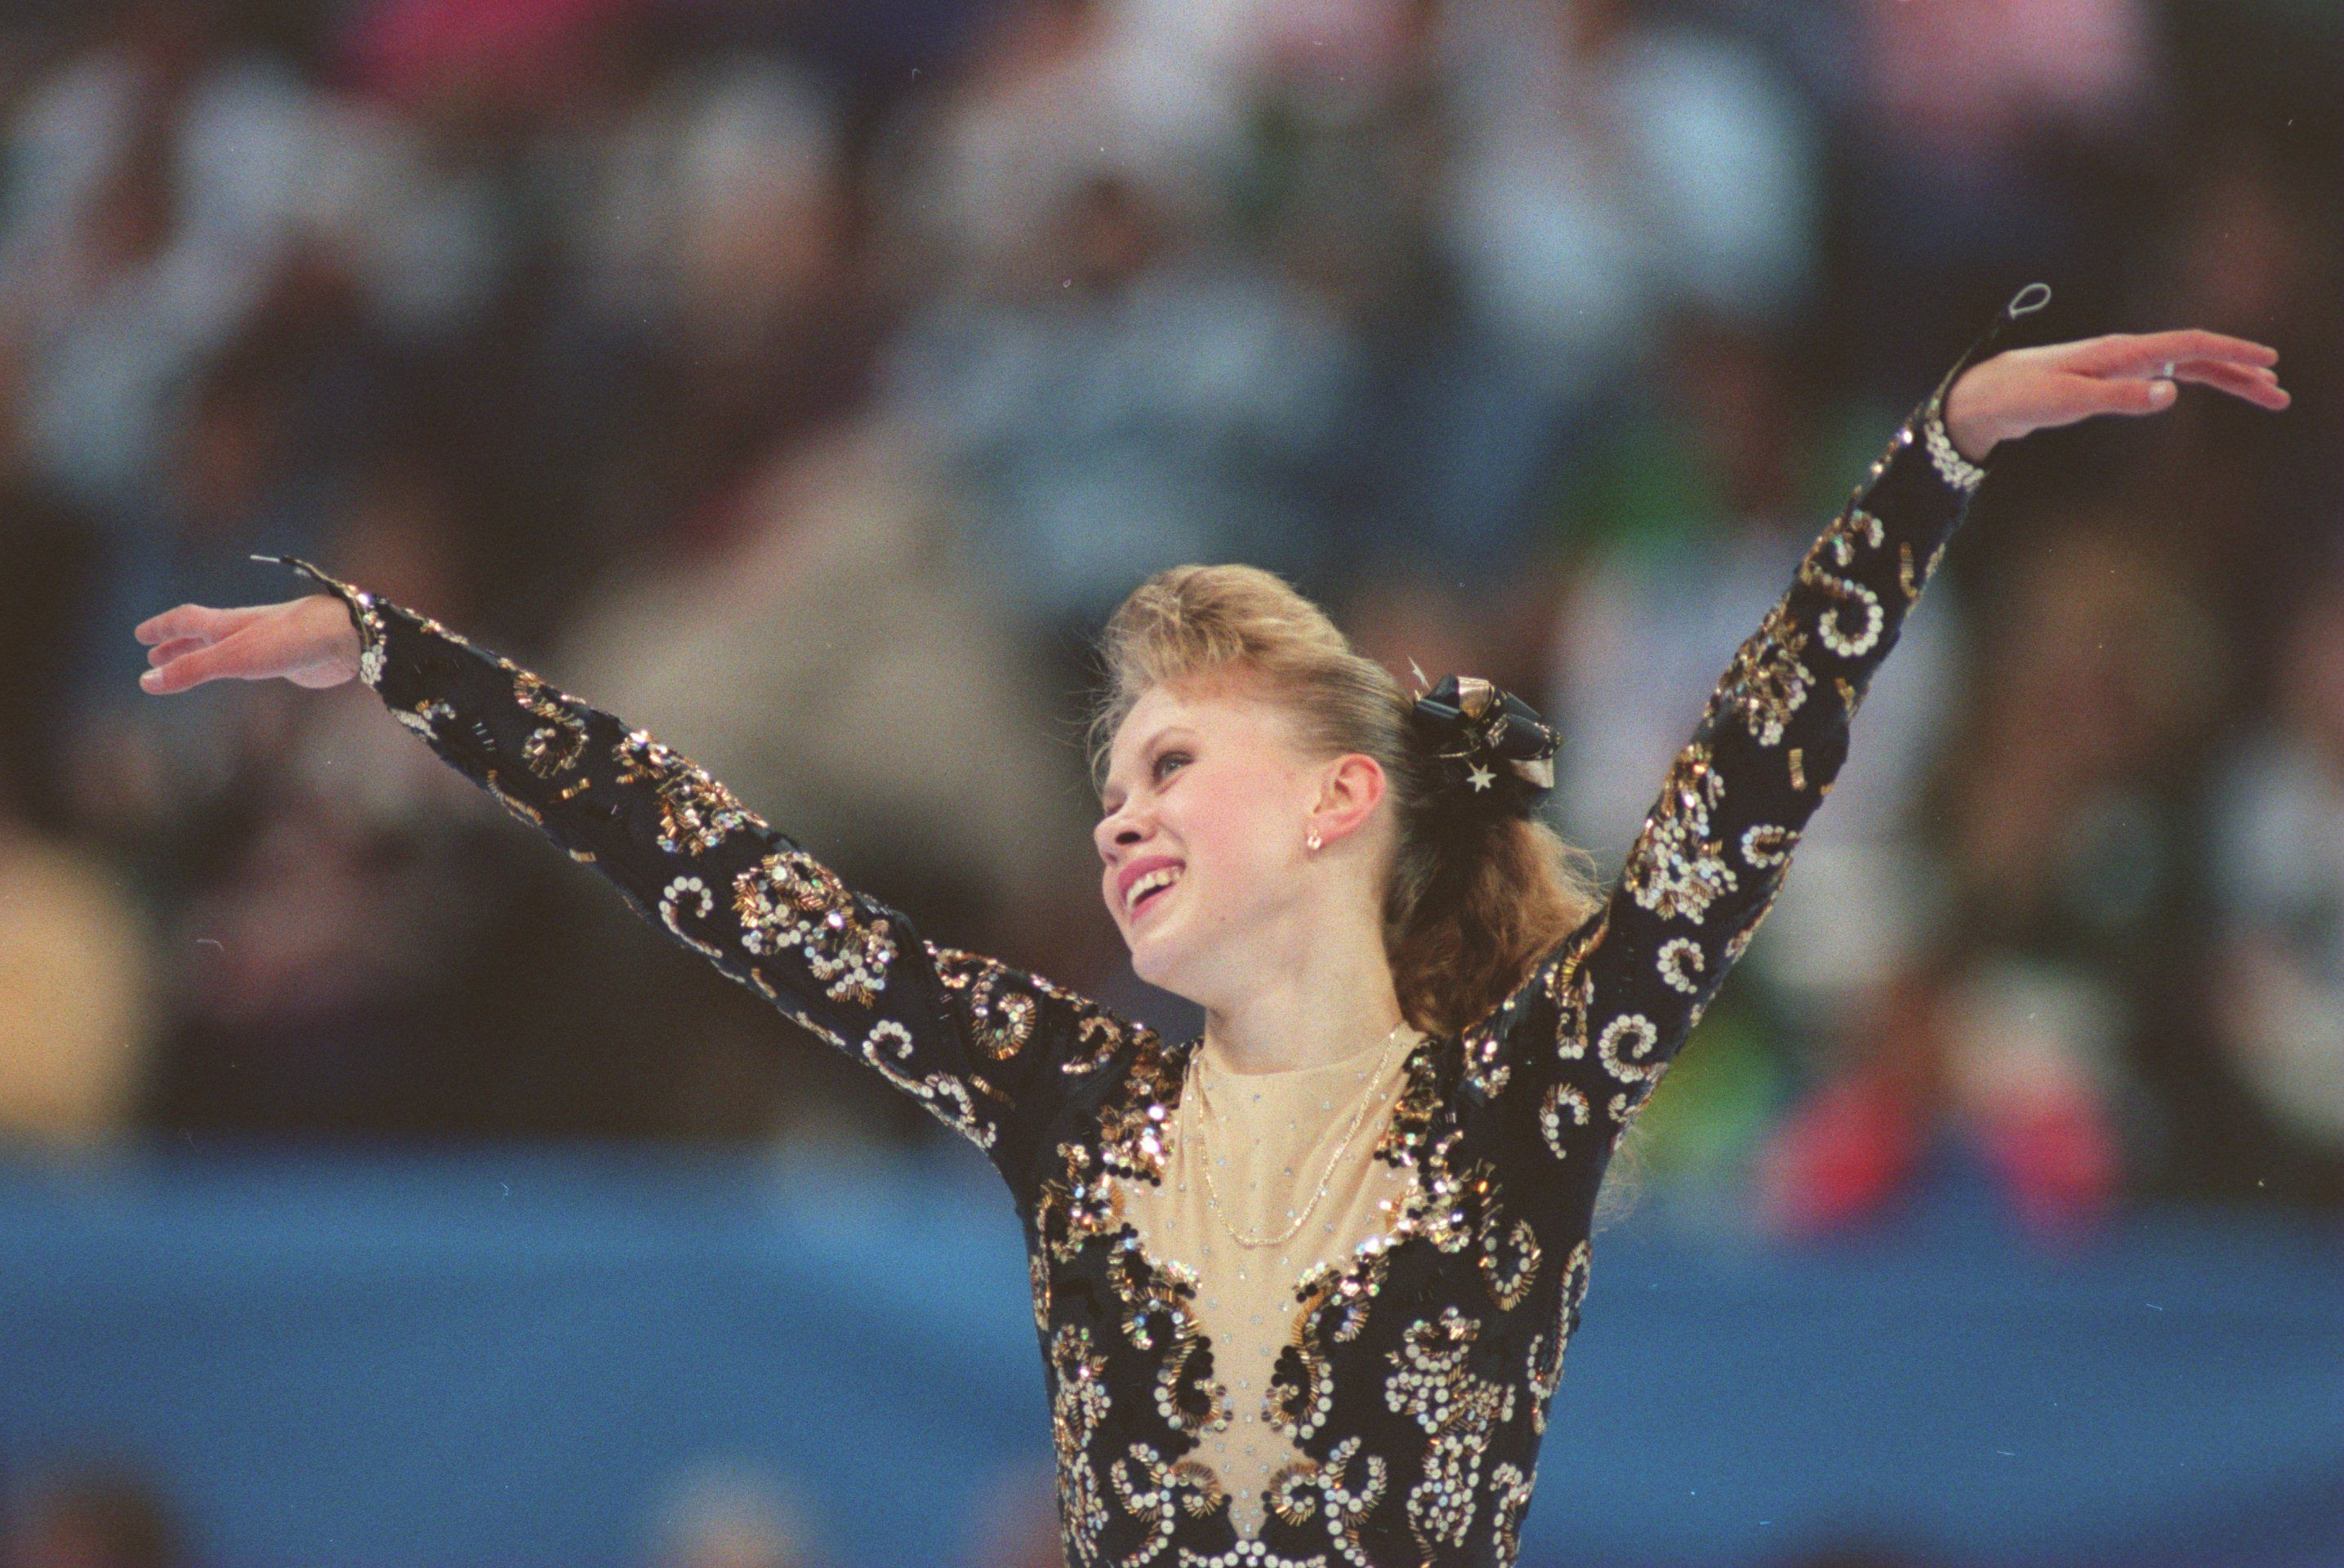 Biography of Olympic Figure Skater Oksana Baiul